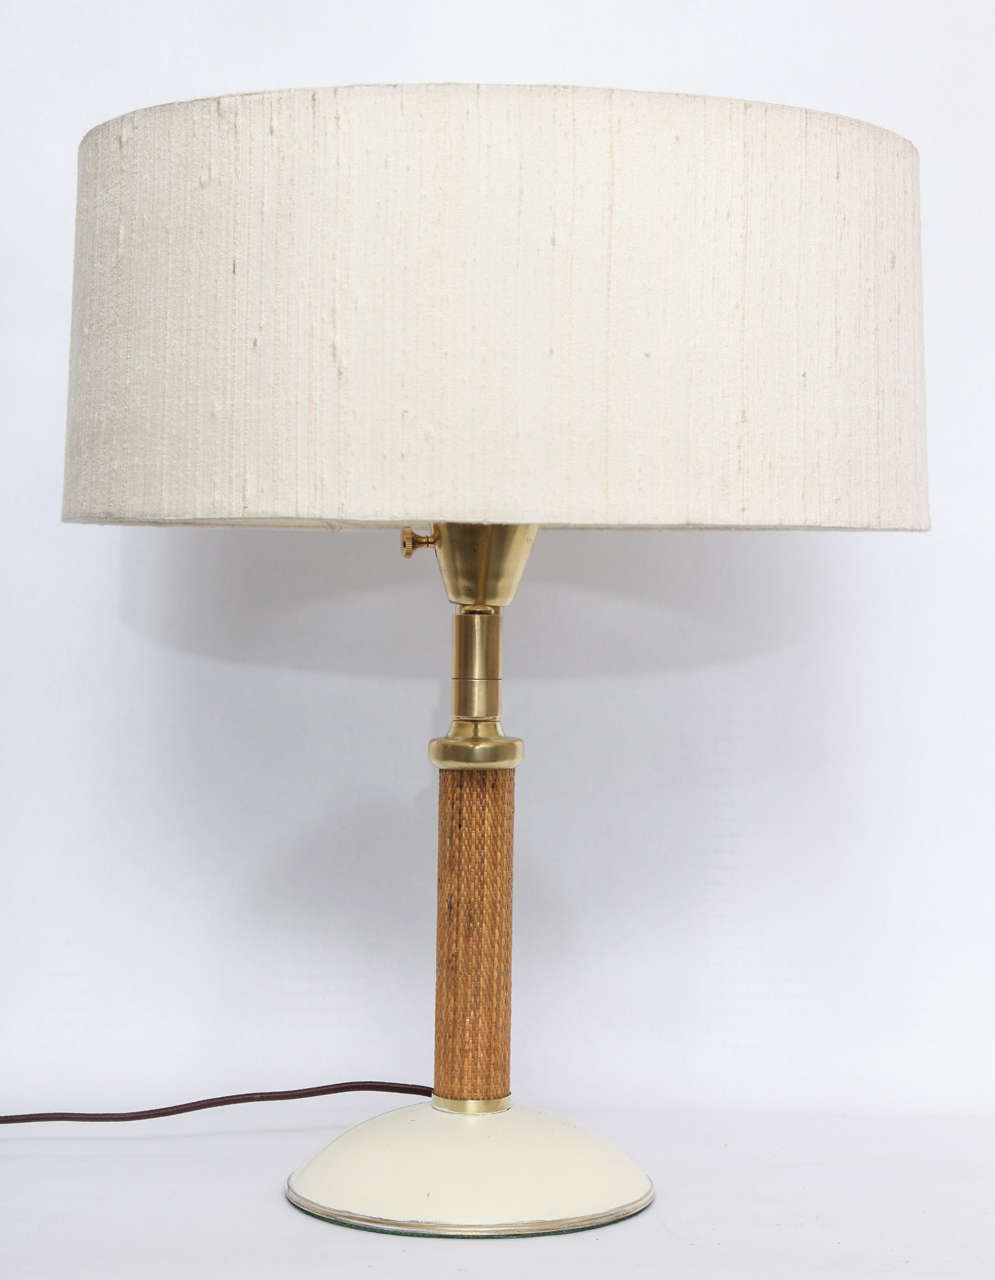 1930s American Modernist Articulated Table Lamp Attributed to Kurt Versen 8